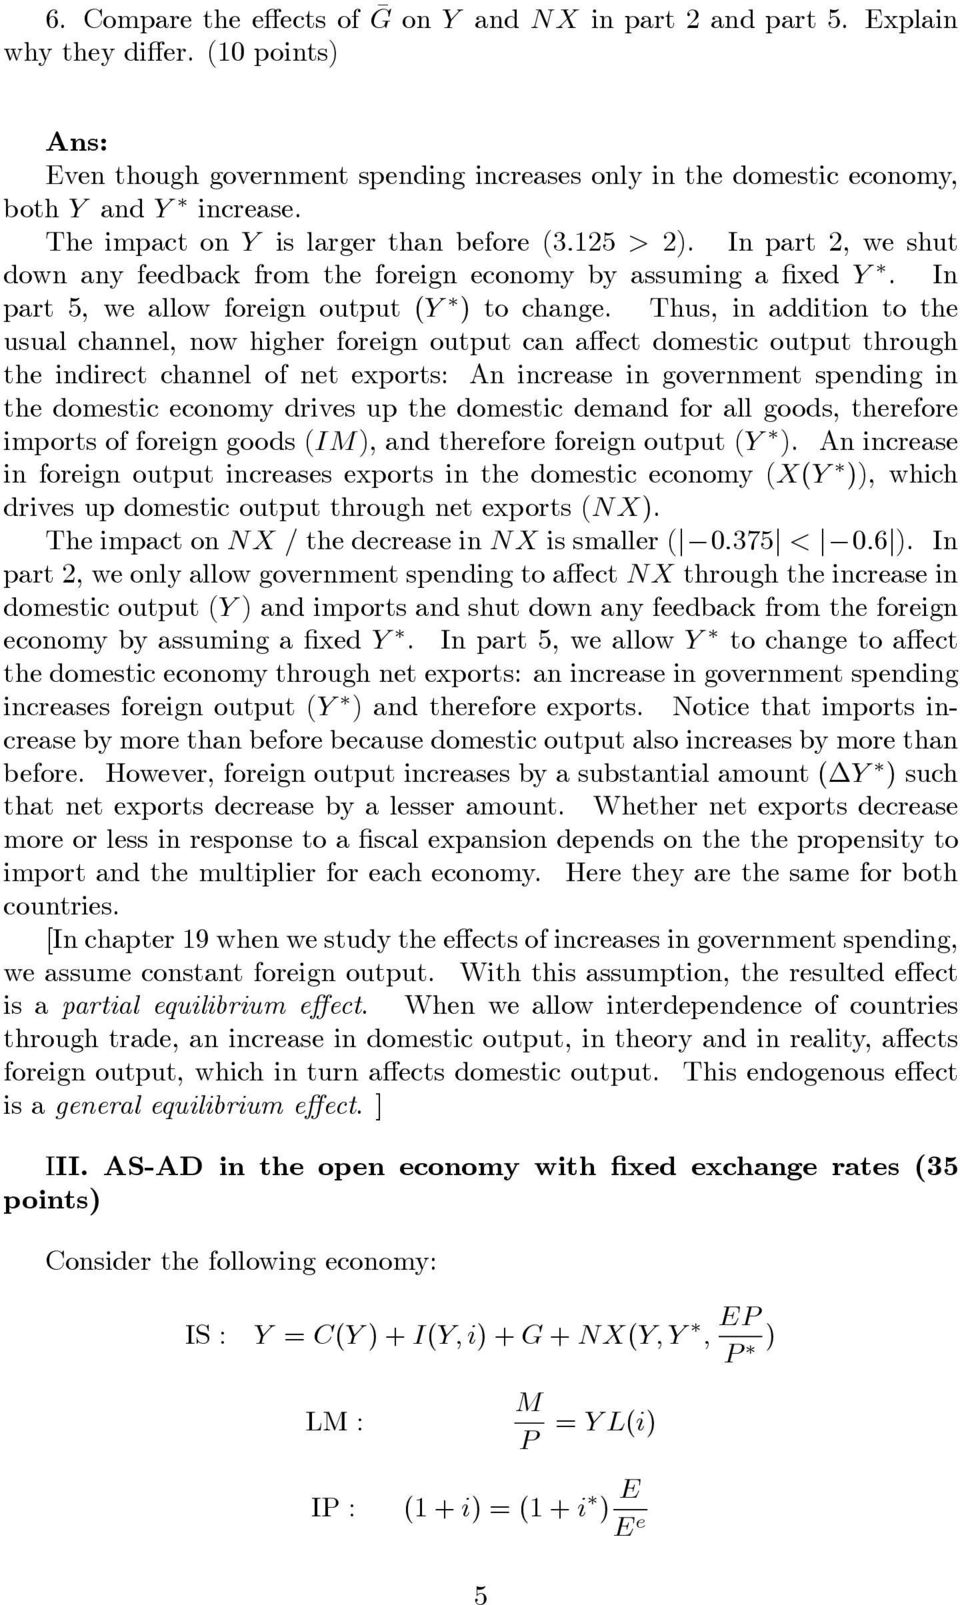 Thus, in addition to the usual channel, now higher foreign output can a ect domestic output through the indirect channel of net exports: An increase in government spending in the domestic economy